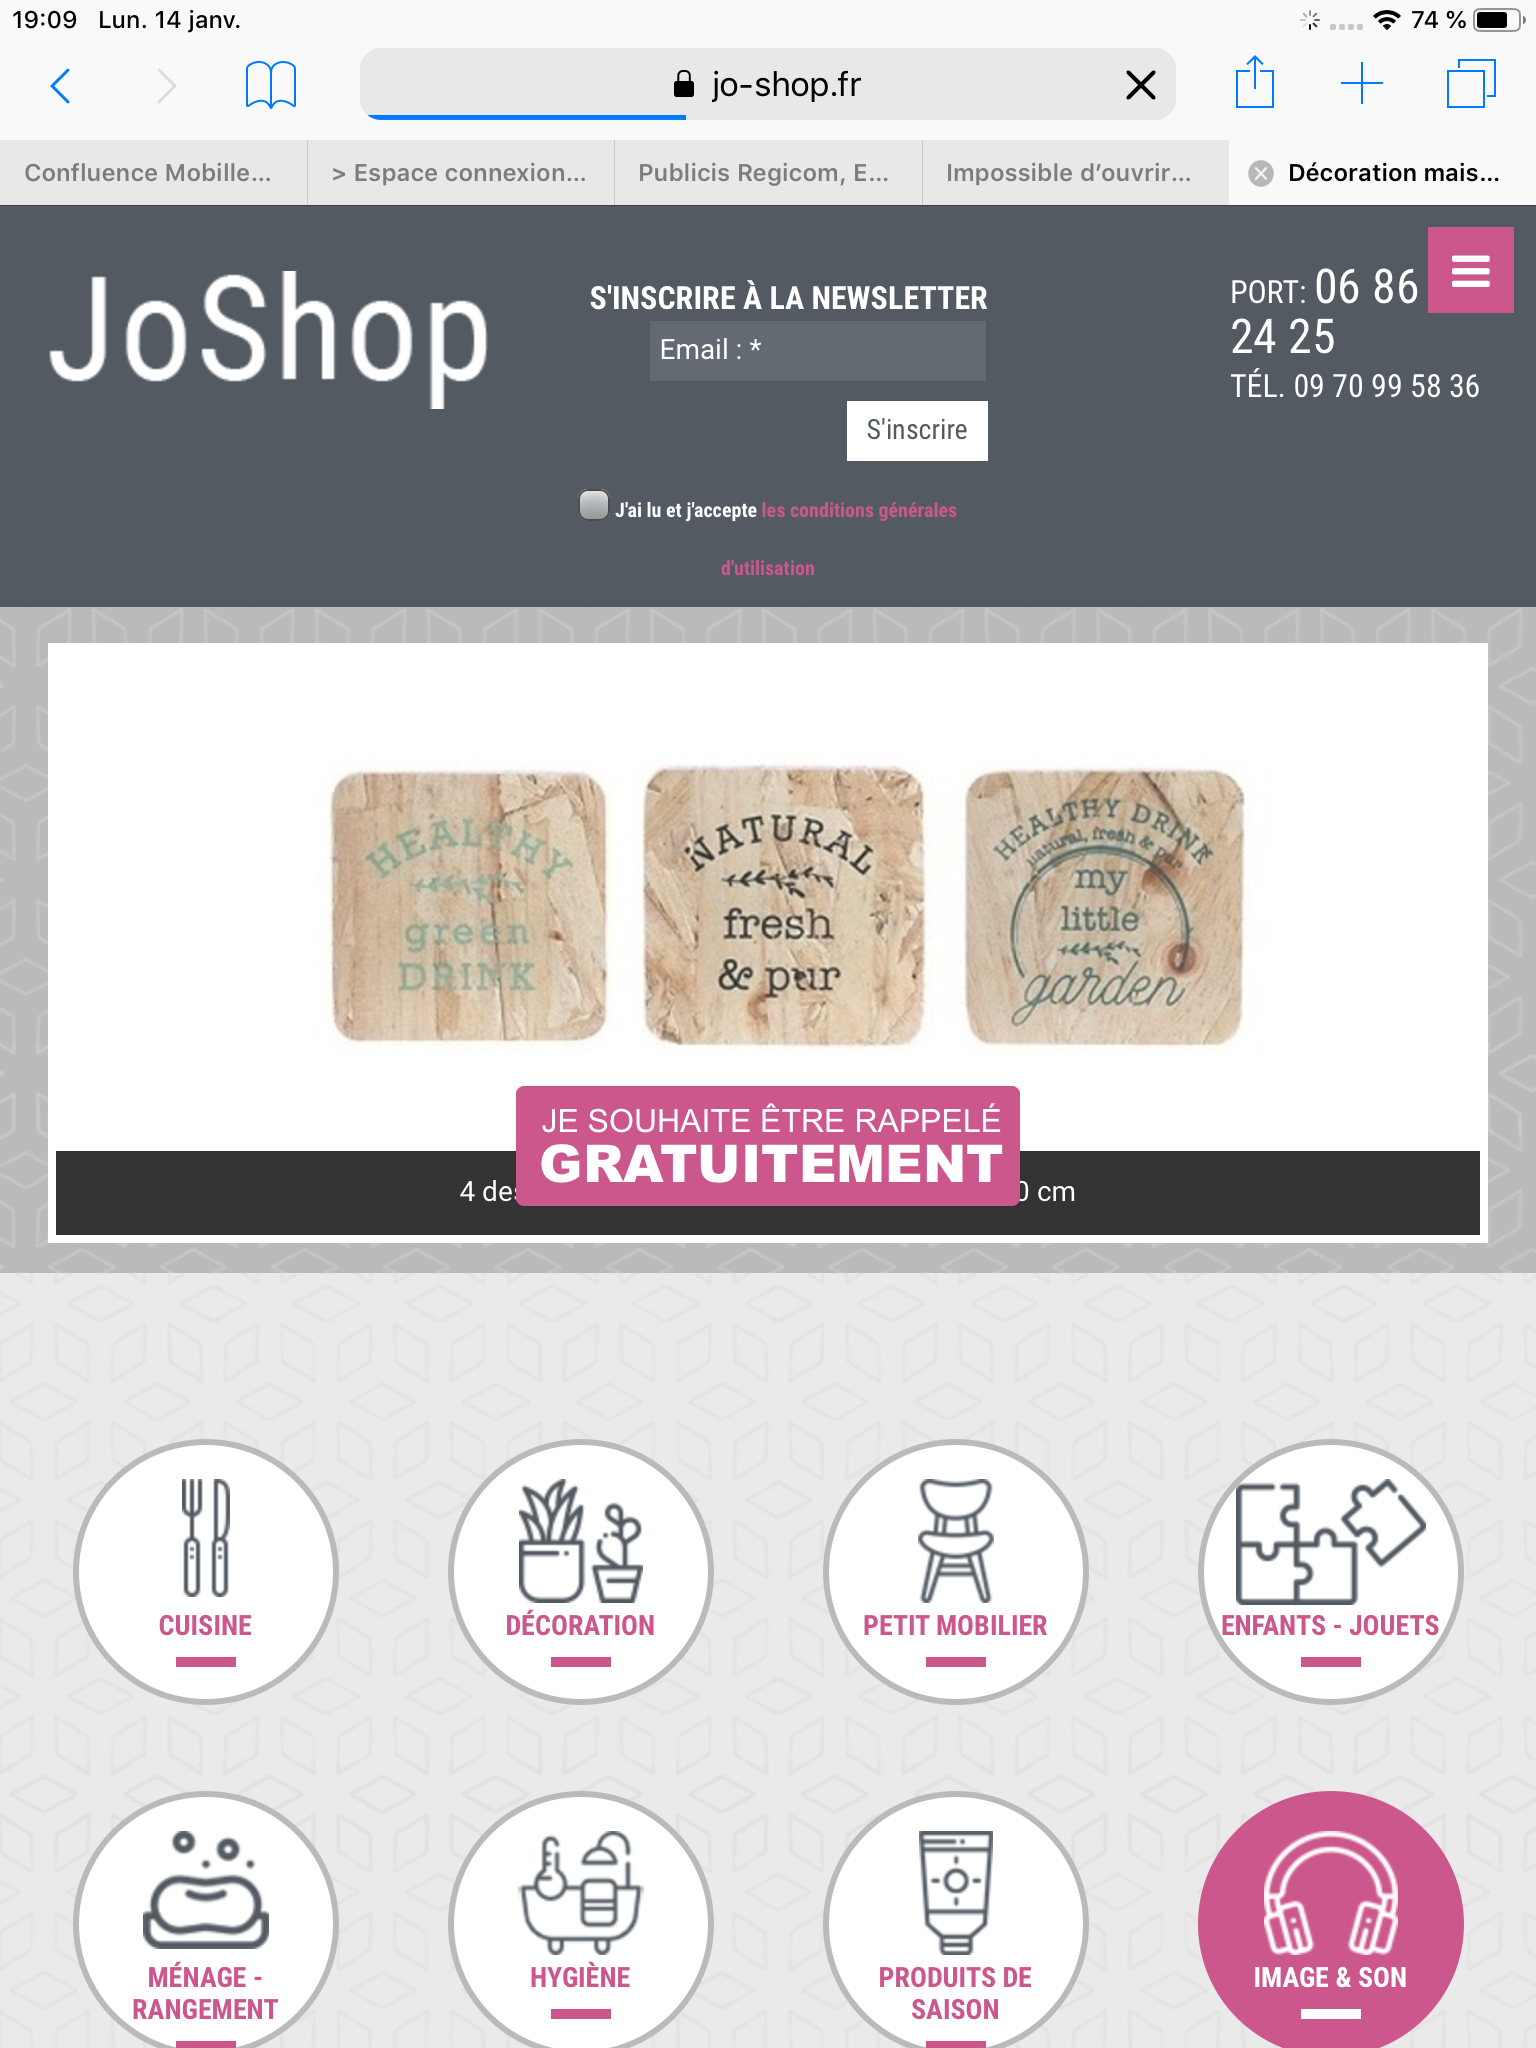 JoShop - Vue Tablette